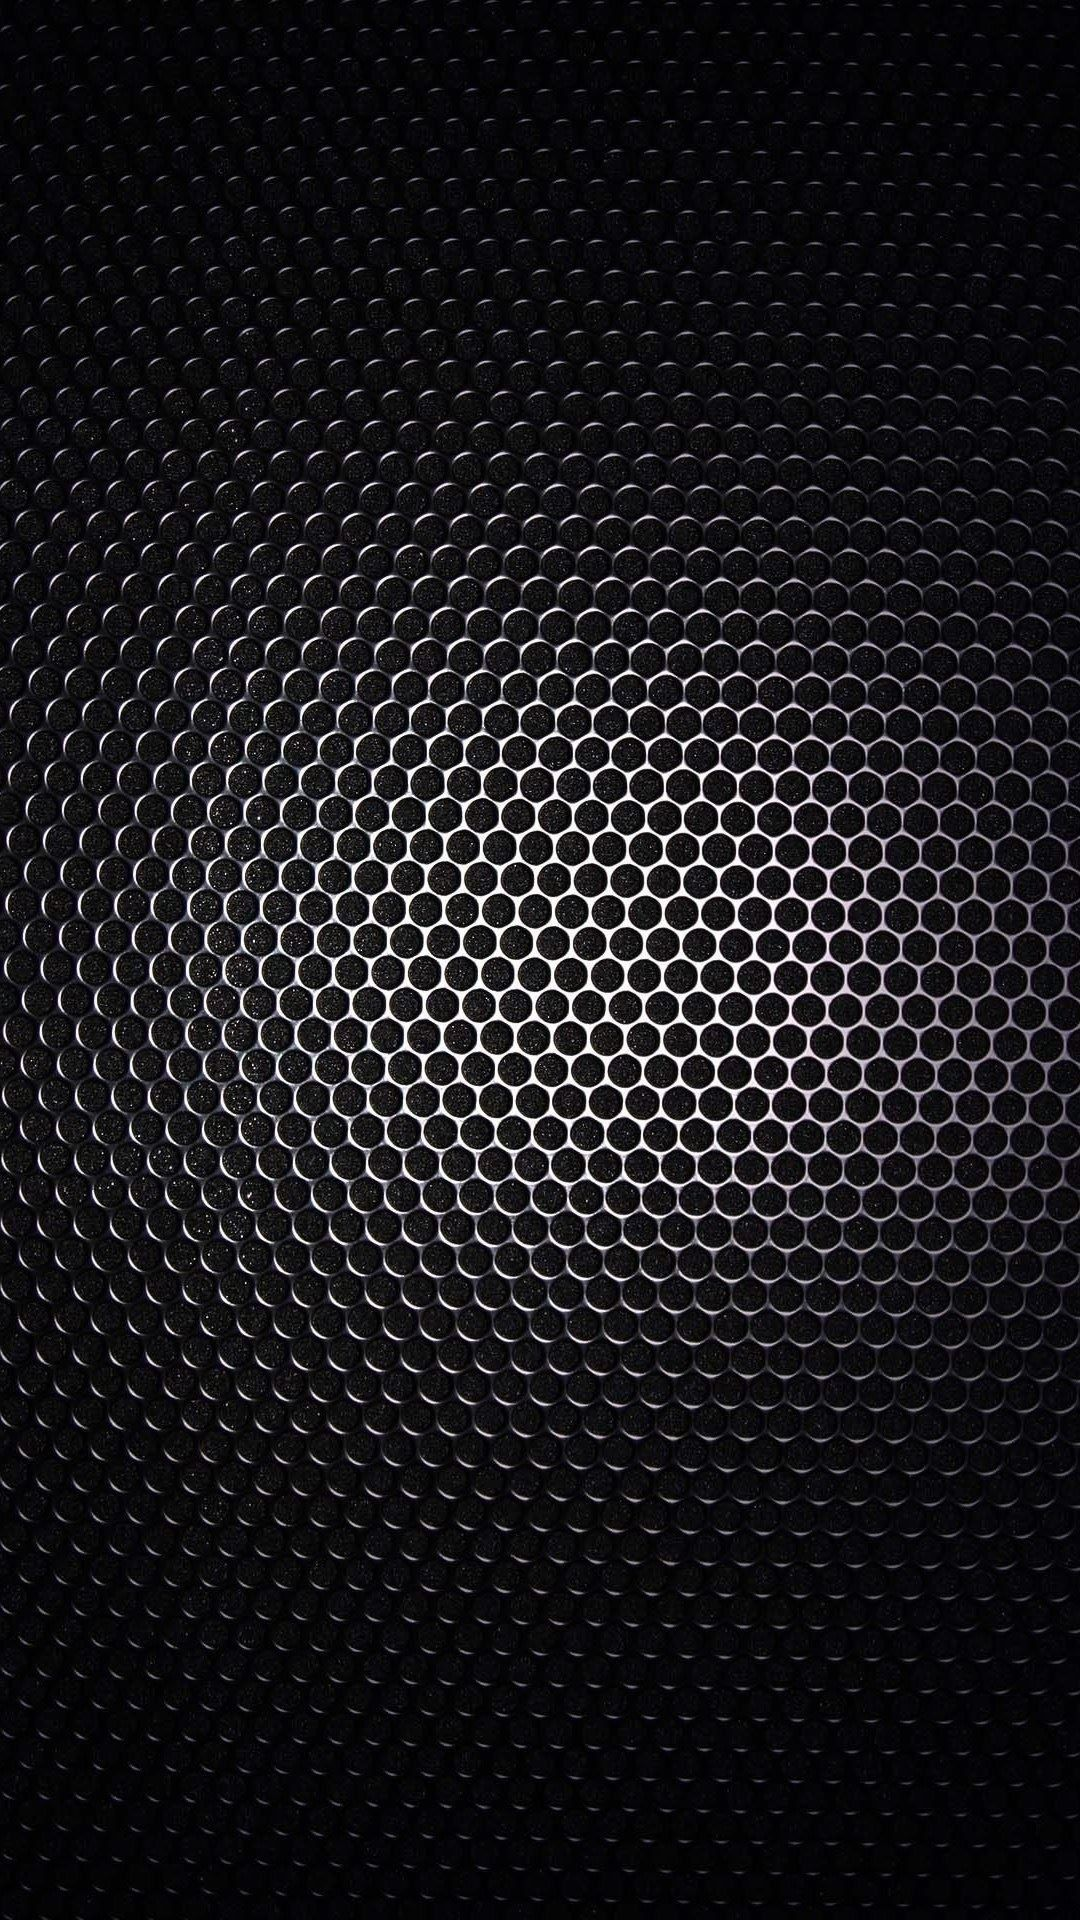 Dark Metal Hexagons Grid Pattern 4k Hd Android And Iphone